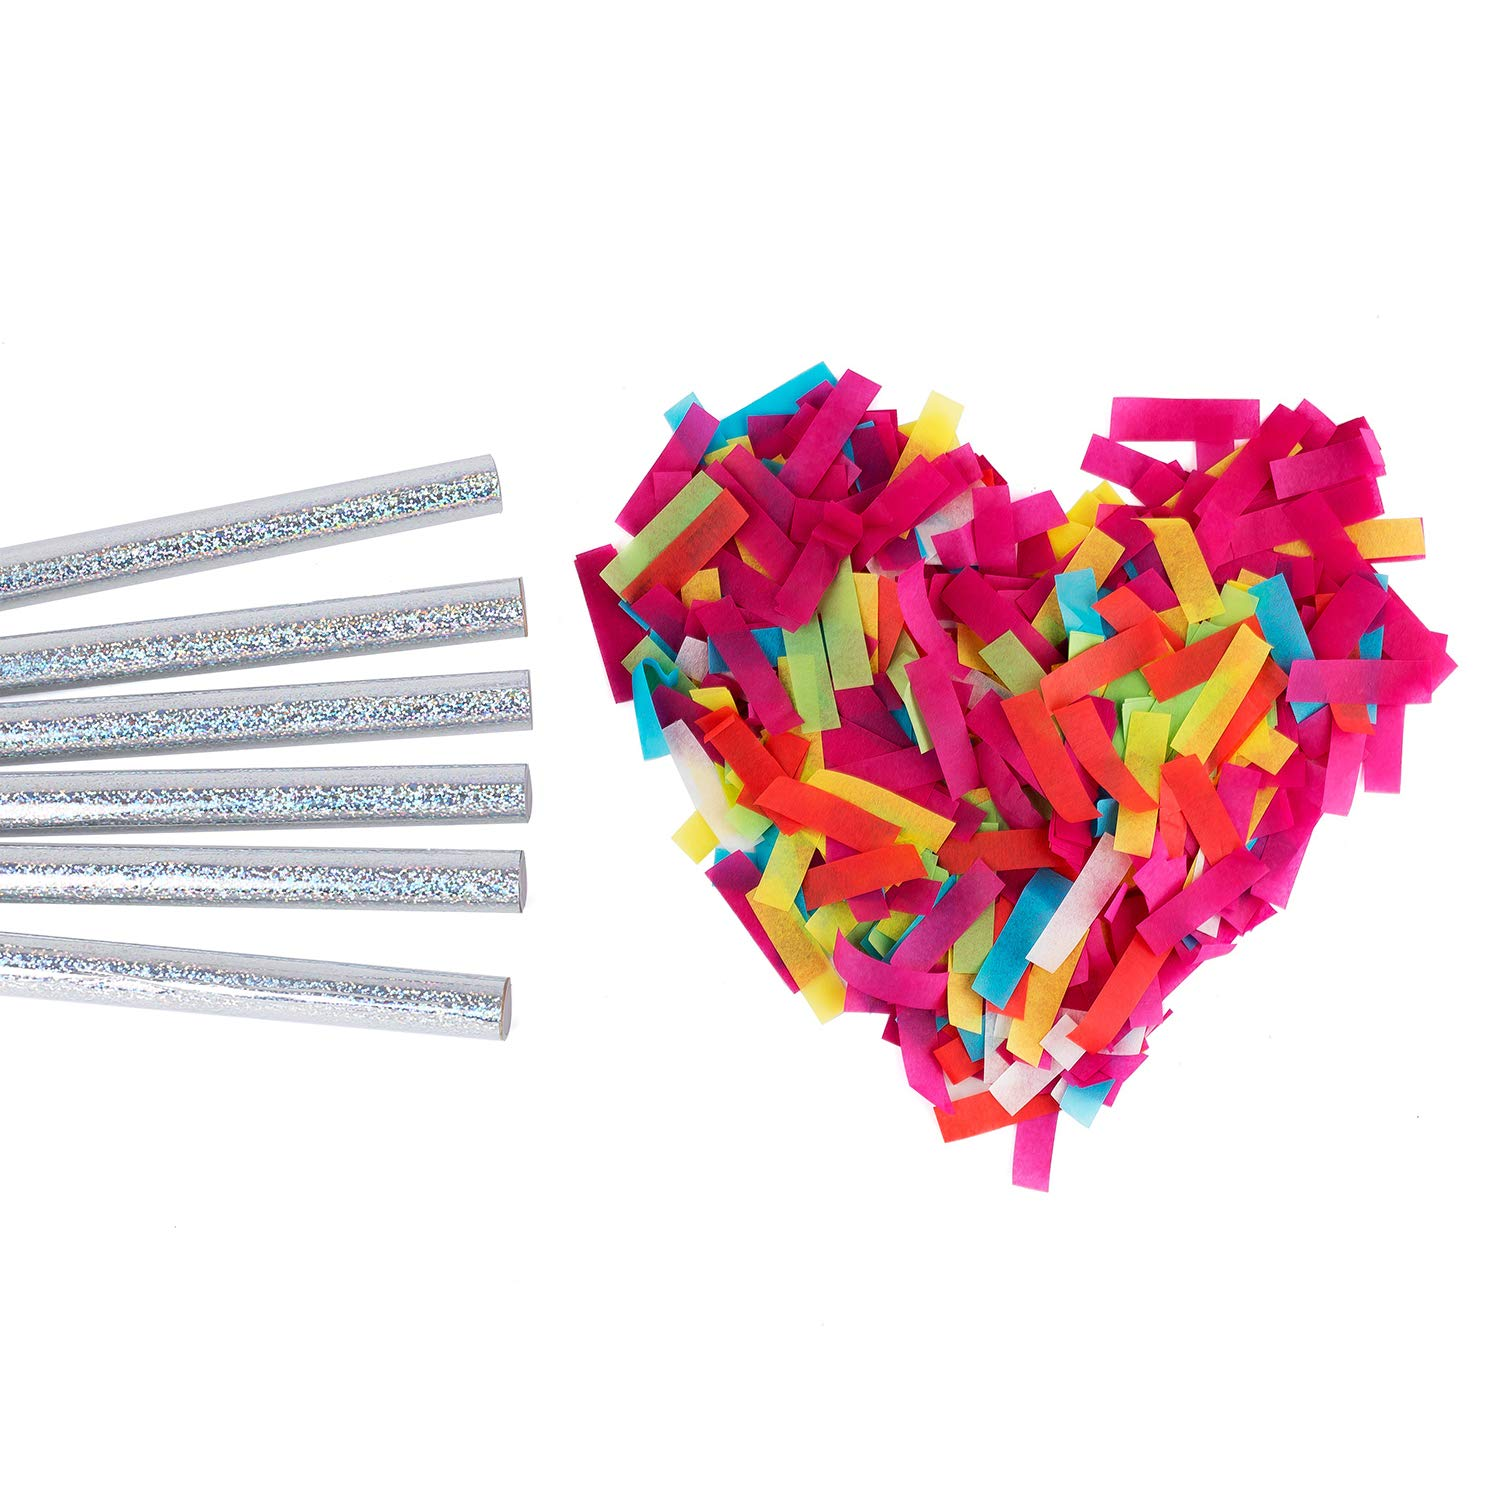 Battife Confetti Wands 7Pack Colorful Biodegradable Tissue Paper Confetti Flick Flutter Sticks for Wedding Celebrations, Anniversary, Birthday, Multi-Color, 14 inch